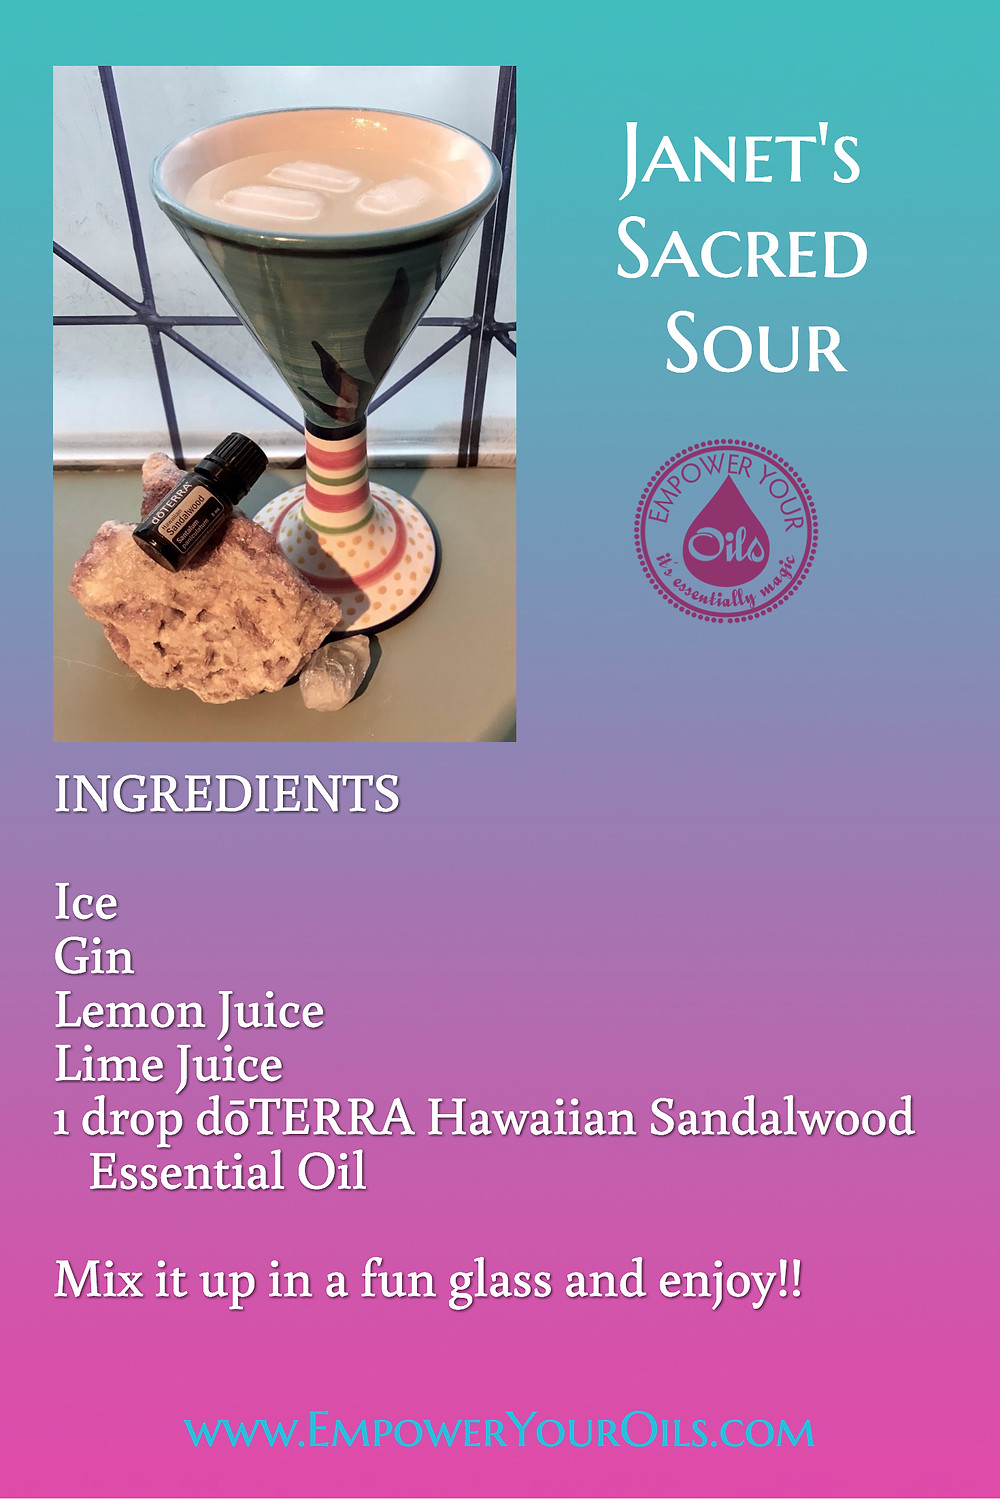 Janet's Sacred Sour